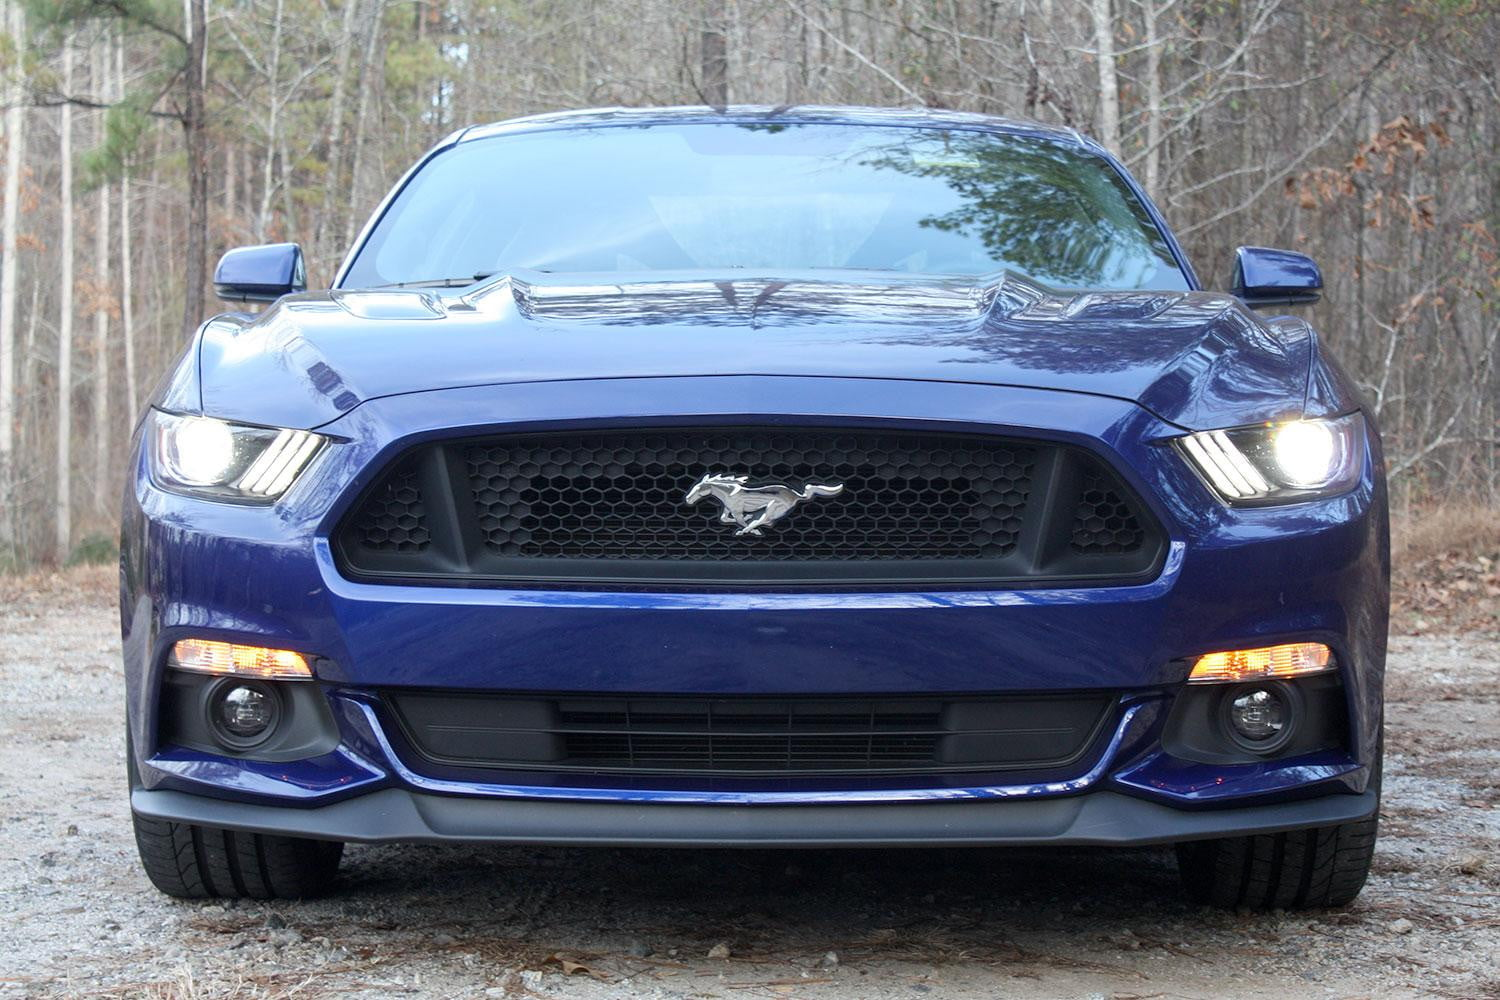 All Types gt 2015 mustang : 2015 Ford Mustang GT review | Digital Trends